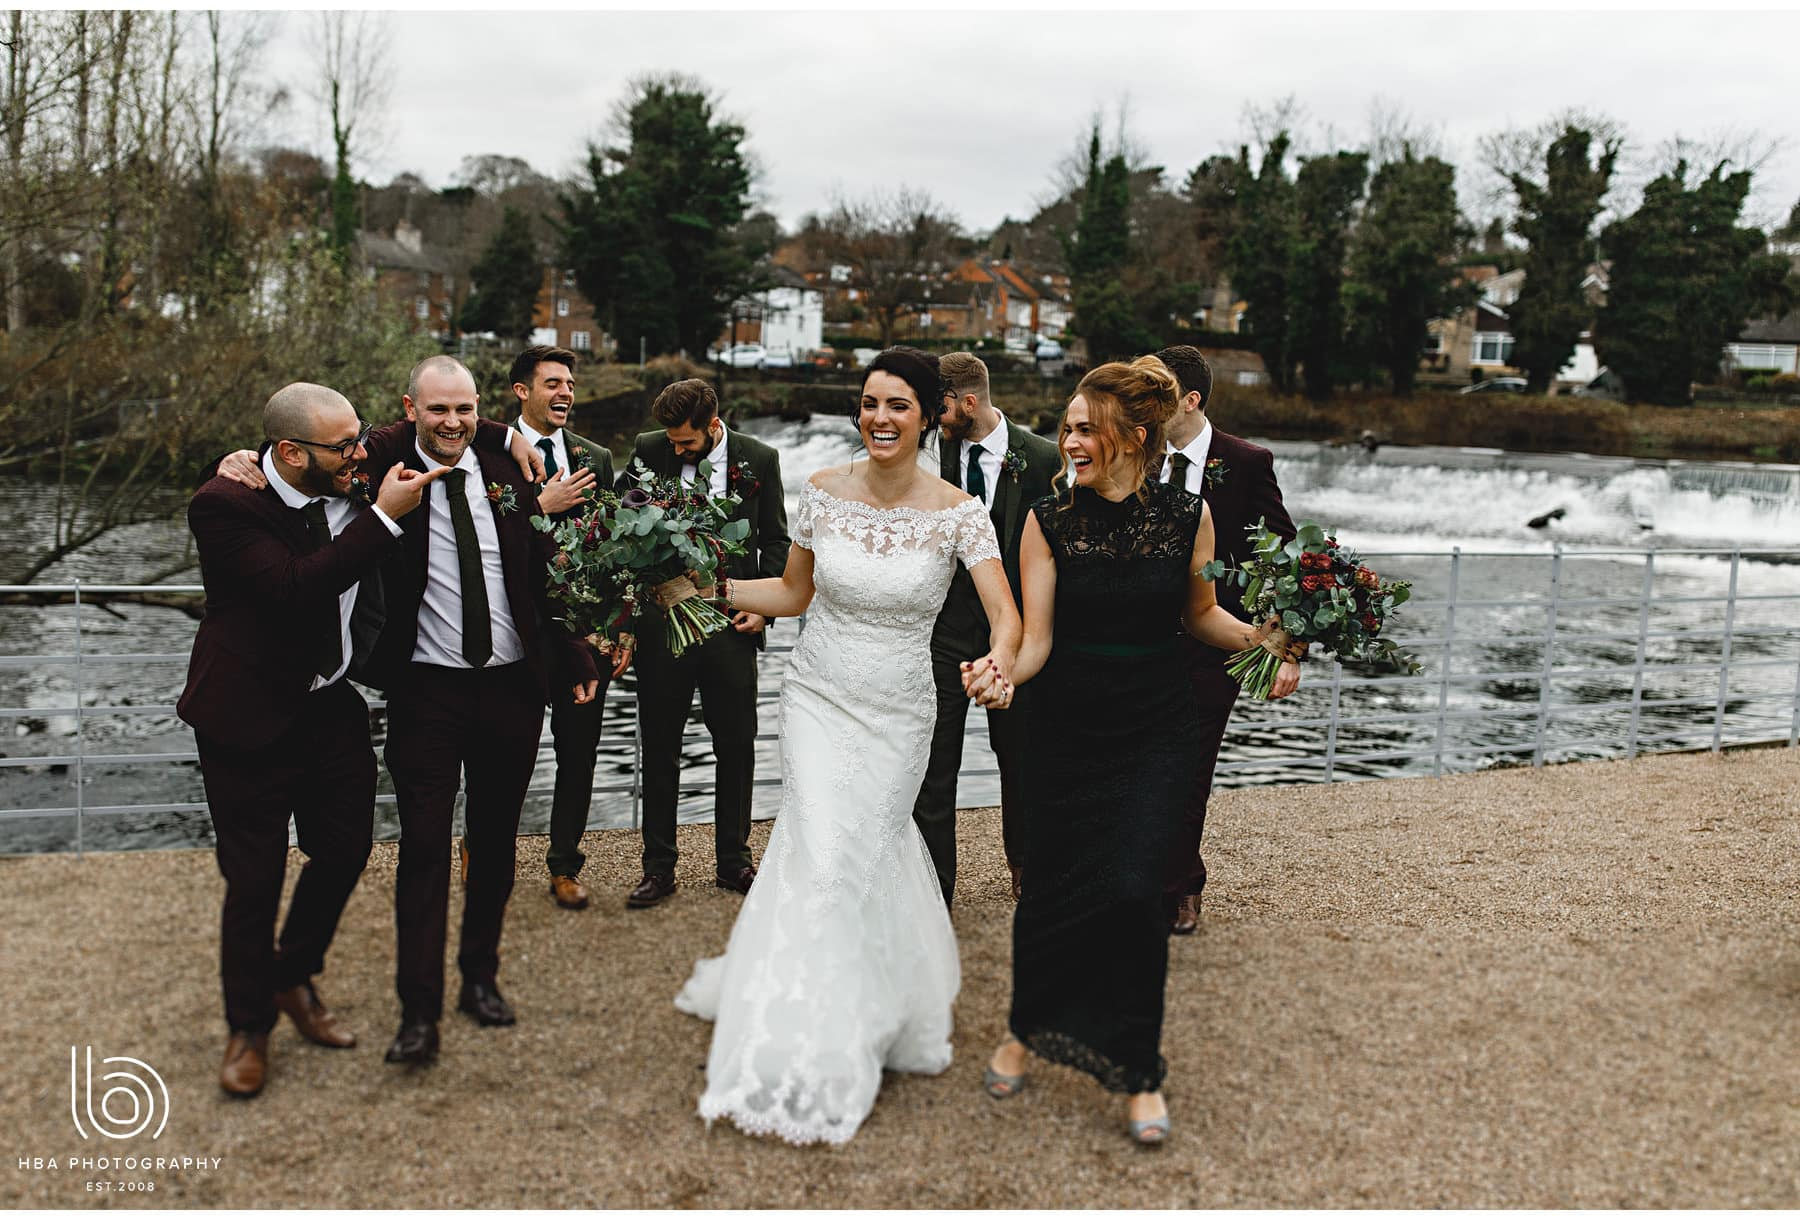 the bride walking with her bridesmaids